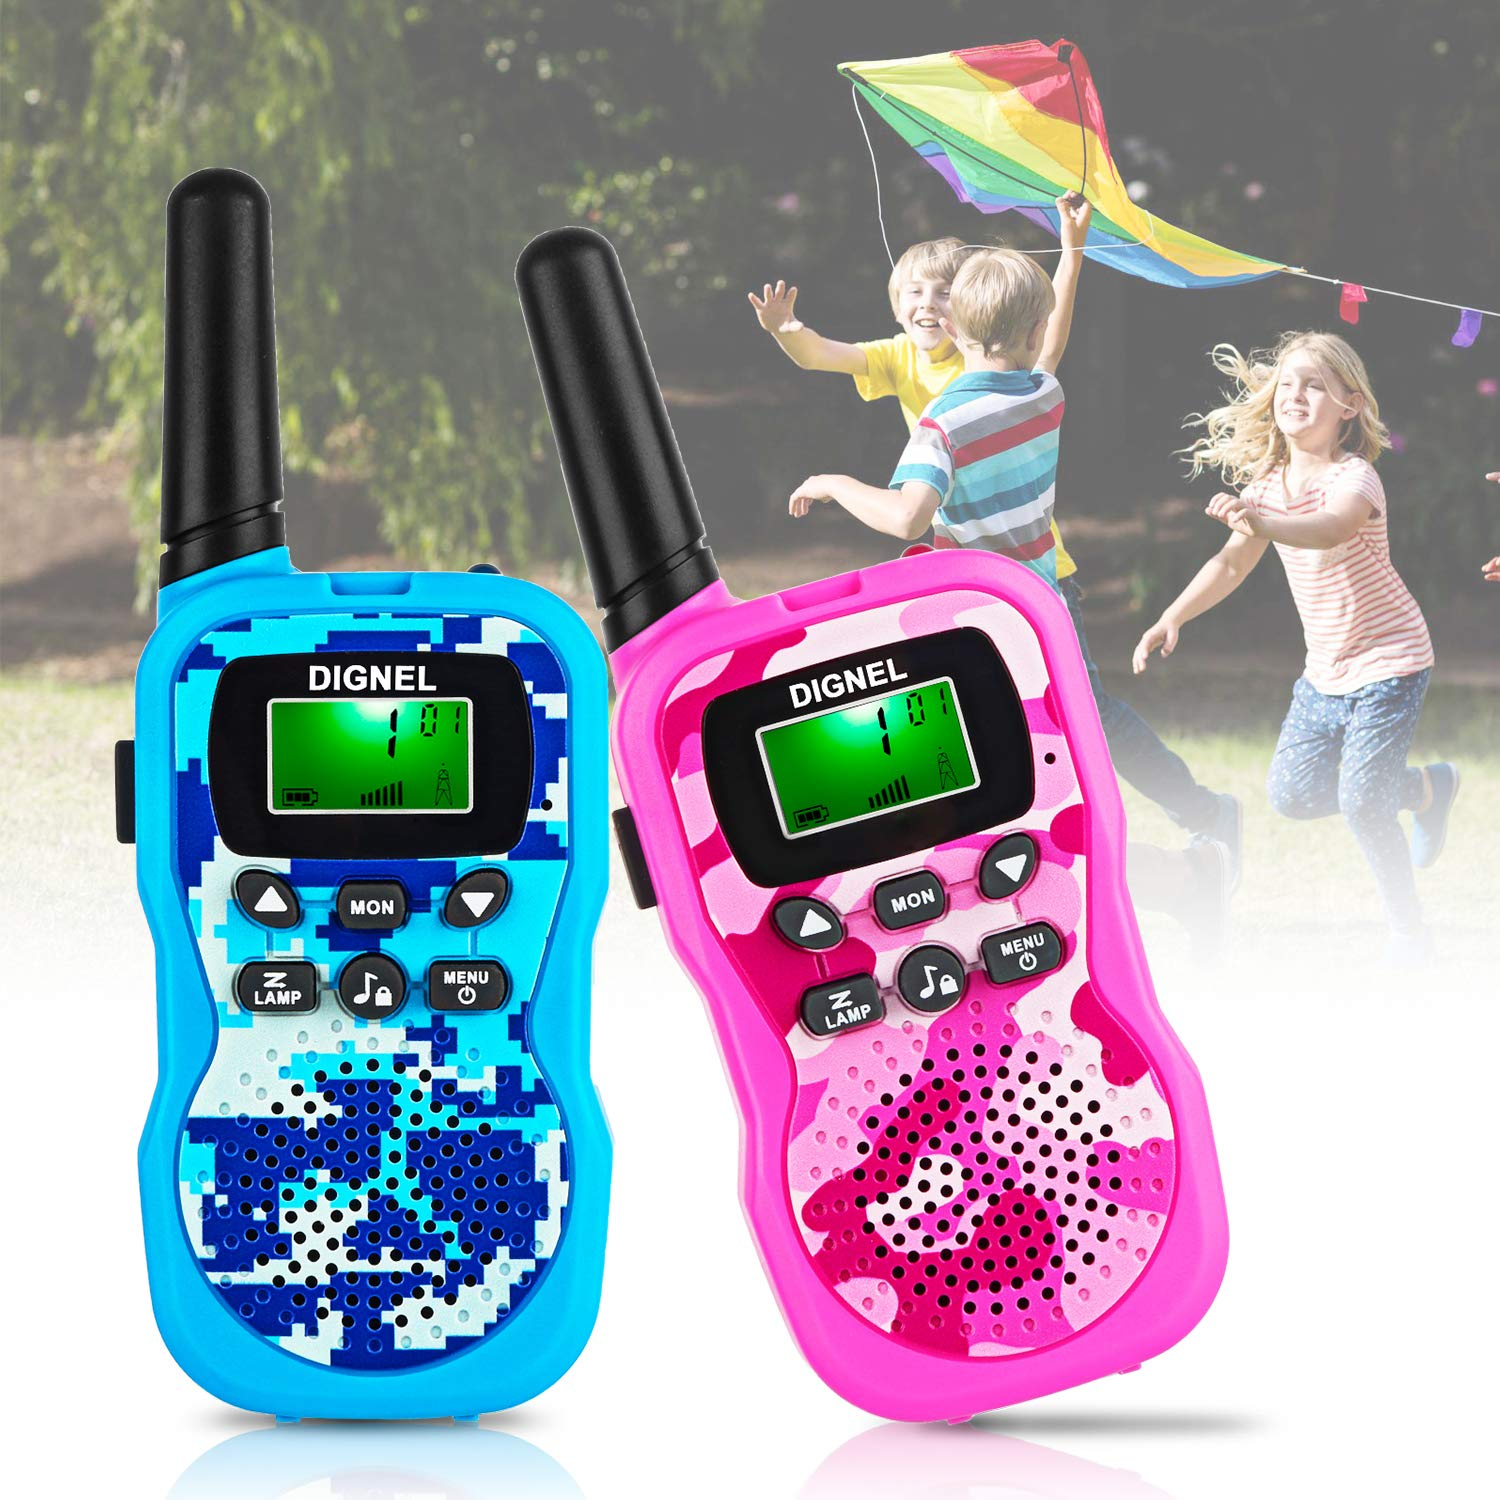 Dignel Walkie Talkies, Kids Walkie Talkies, 2 Packs 22 Channels Outdoor Toys, 3 Miles Range Walkie Talkies for Kids Camping Outdoor Adventures